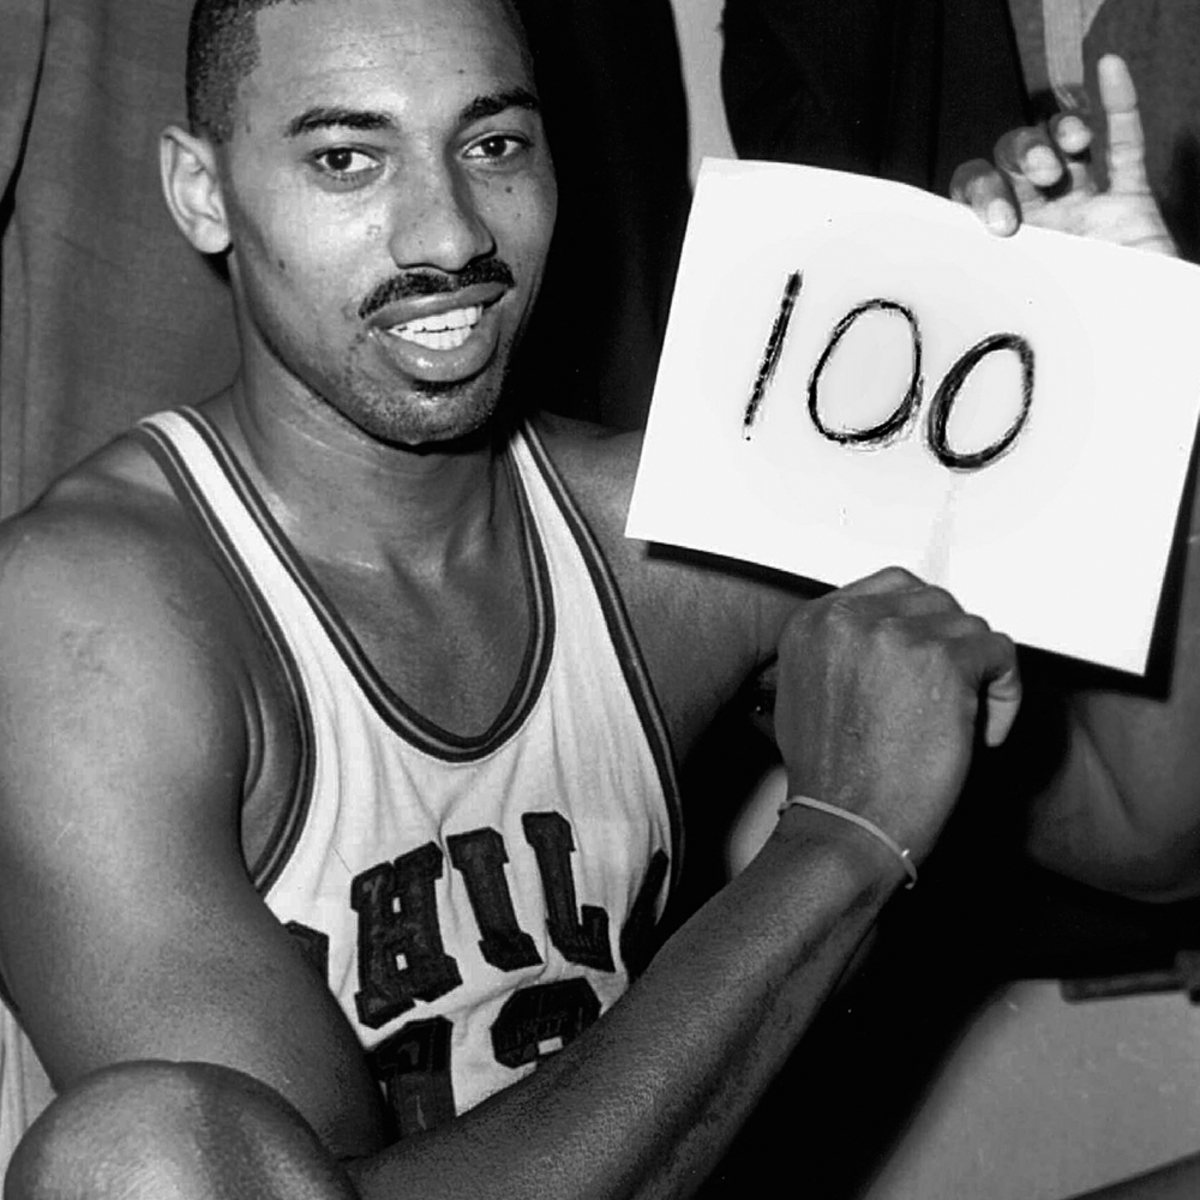 Wilt Chamberlain boasts his 100 score achievement.